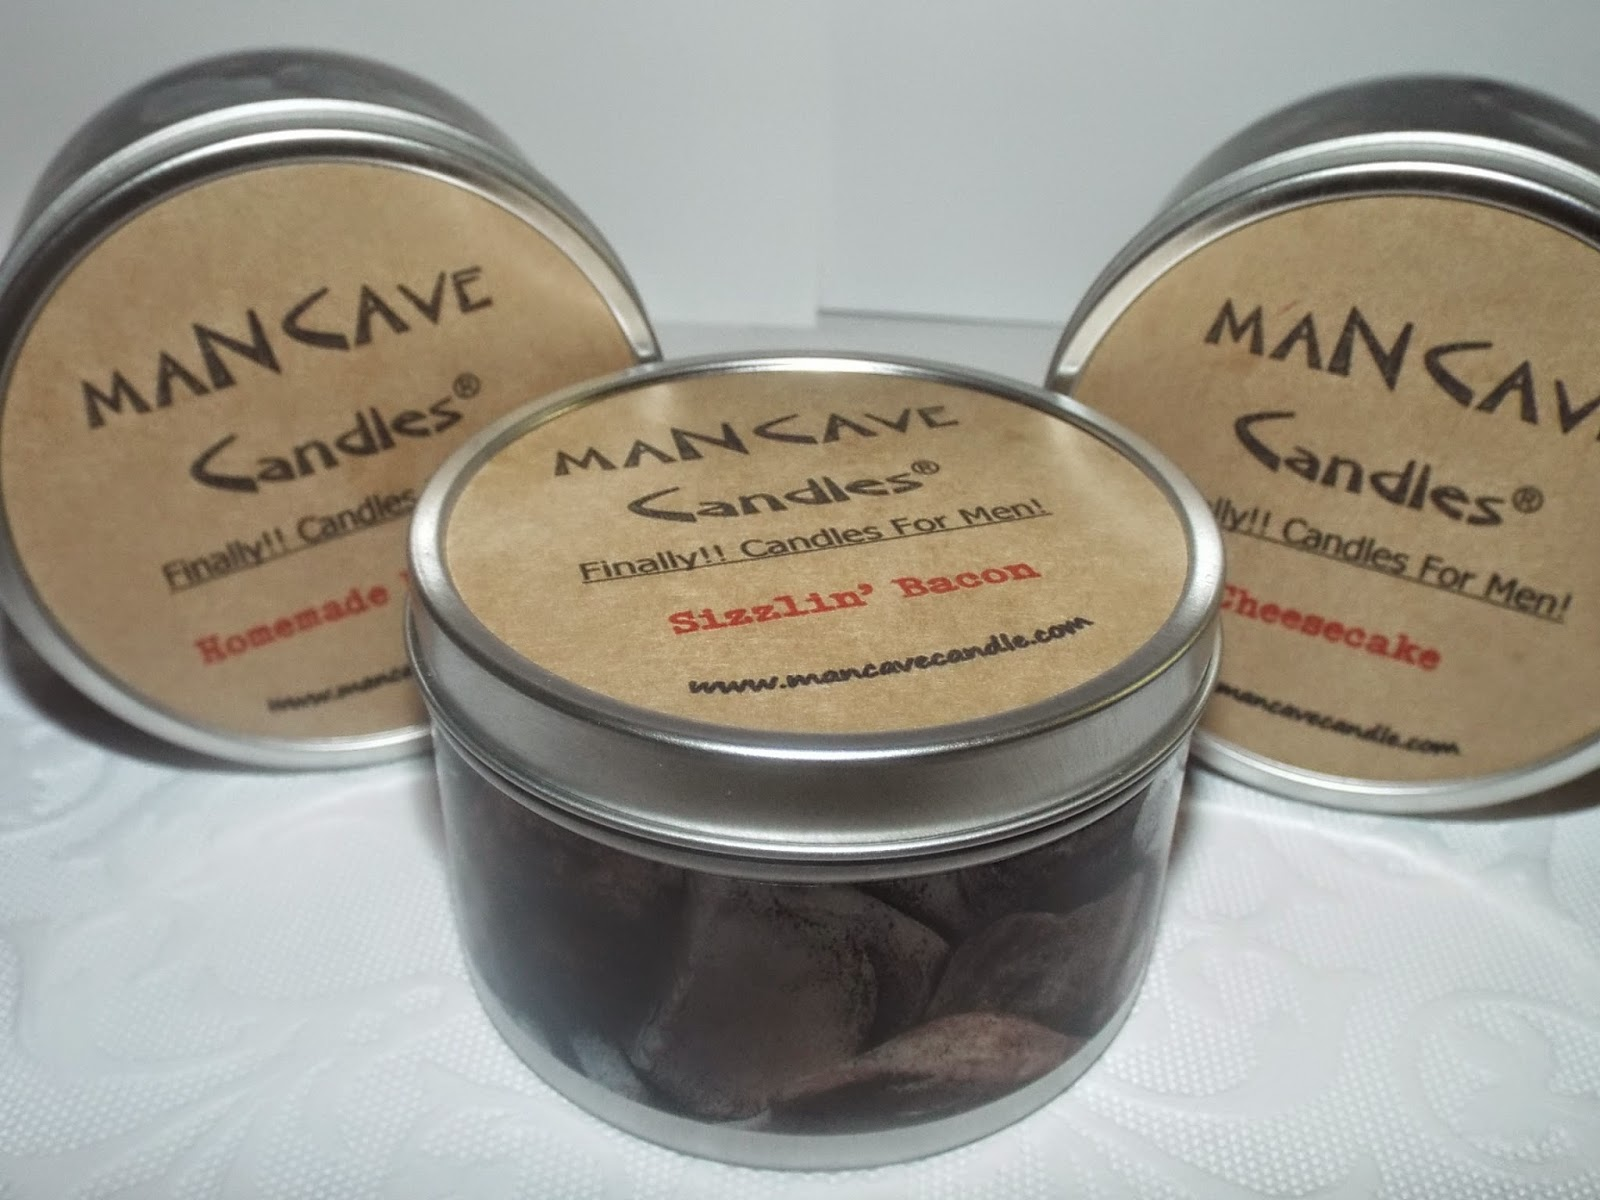 Man Cave Candles:  Sizzlin' Bacon, Cheesecake, Homemade Brownies